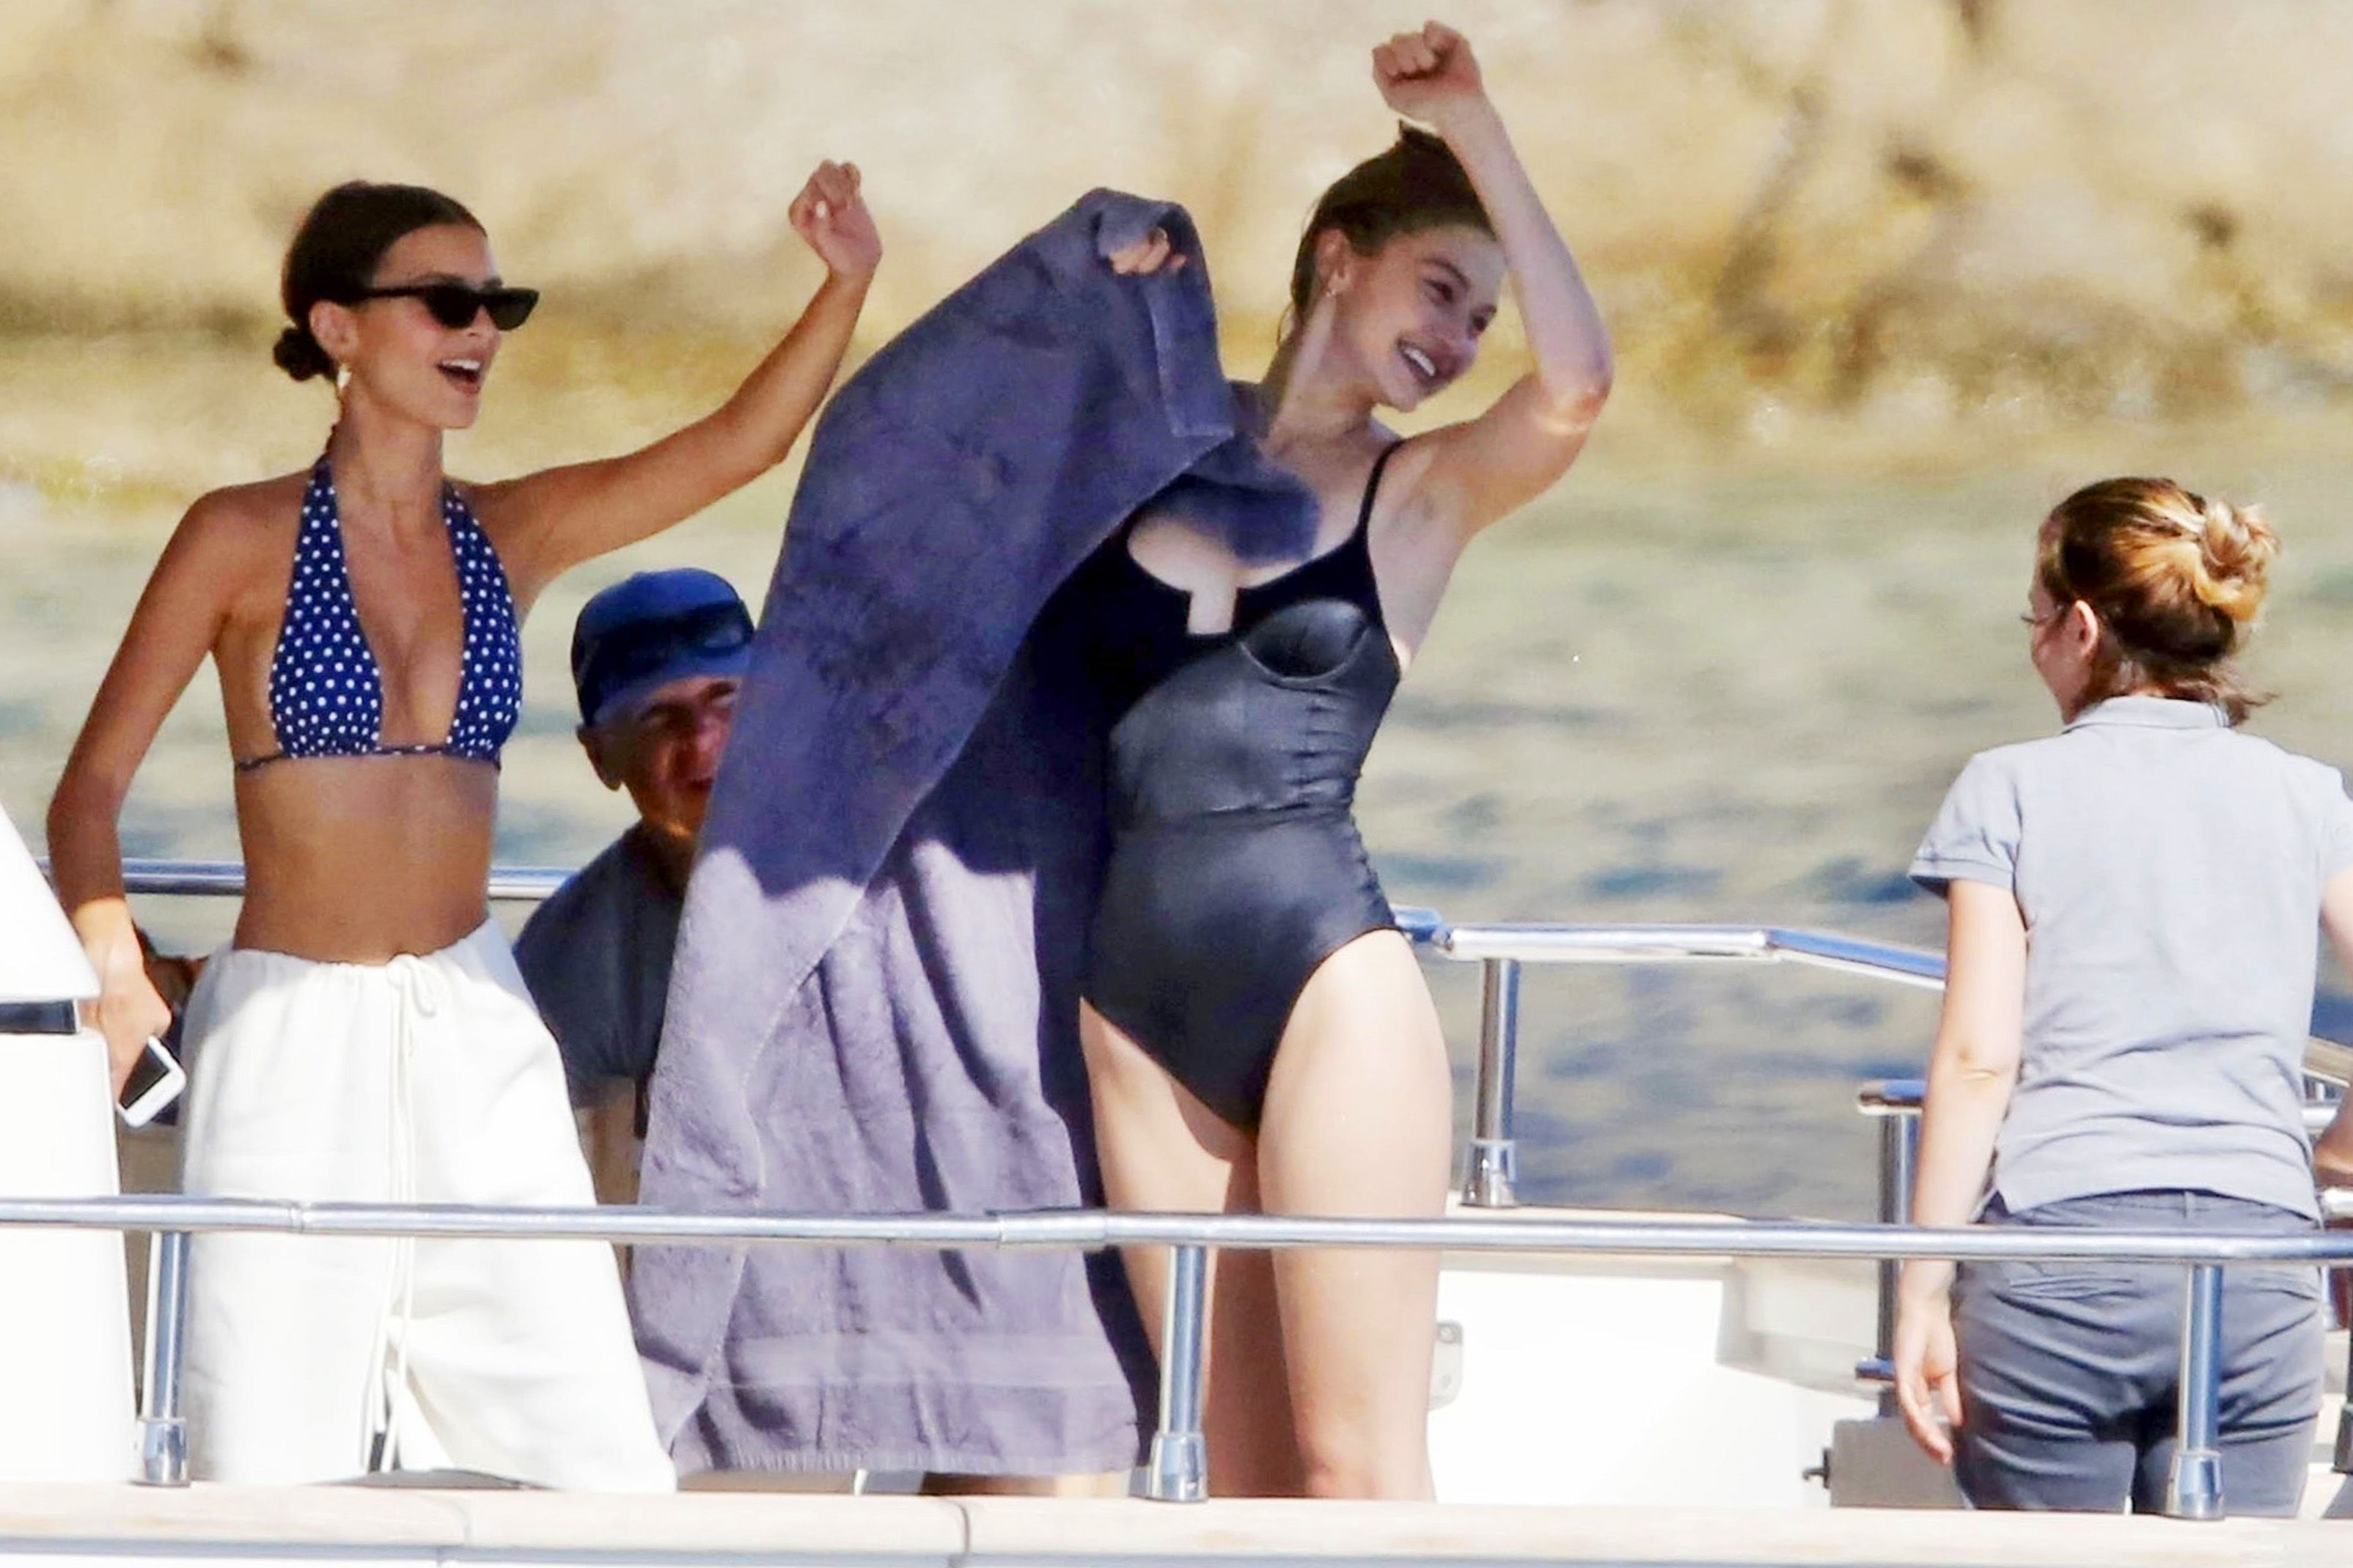 40bc0e2ed6 Stars in Sexy Bathing Suits - Celebrities in One-Piece Swimsuits